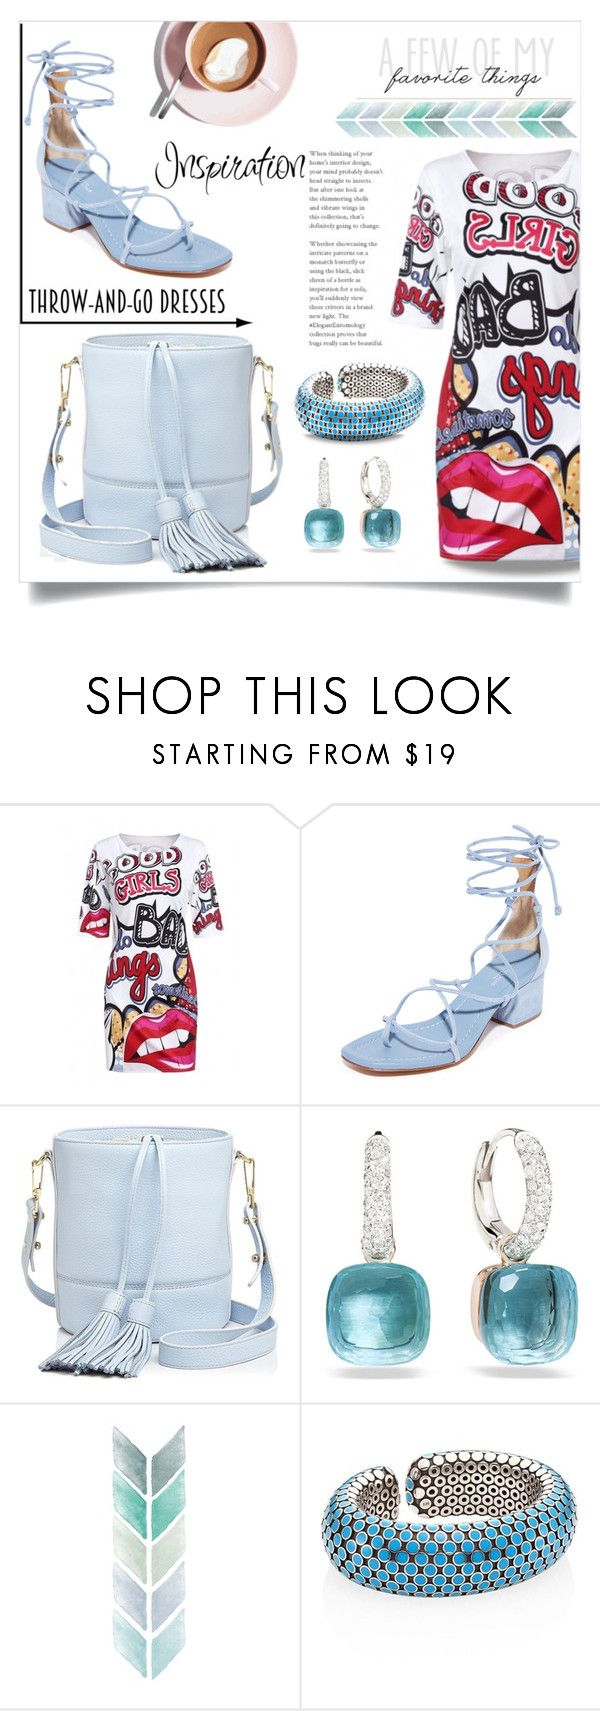 """""""Blue inspiration!"""" by ornellag ❤ liked on Polyvore featuring WithChic, Michael Kors, Milly, Pomellato and John Hardy"""